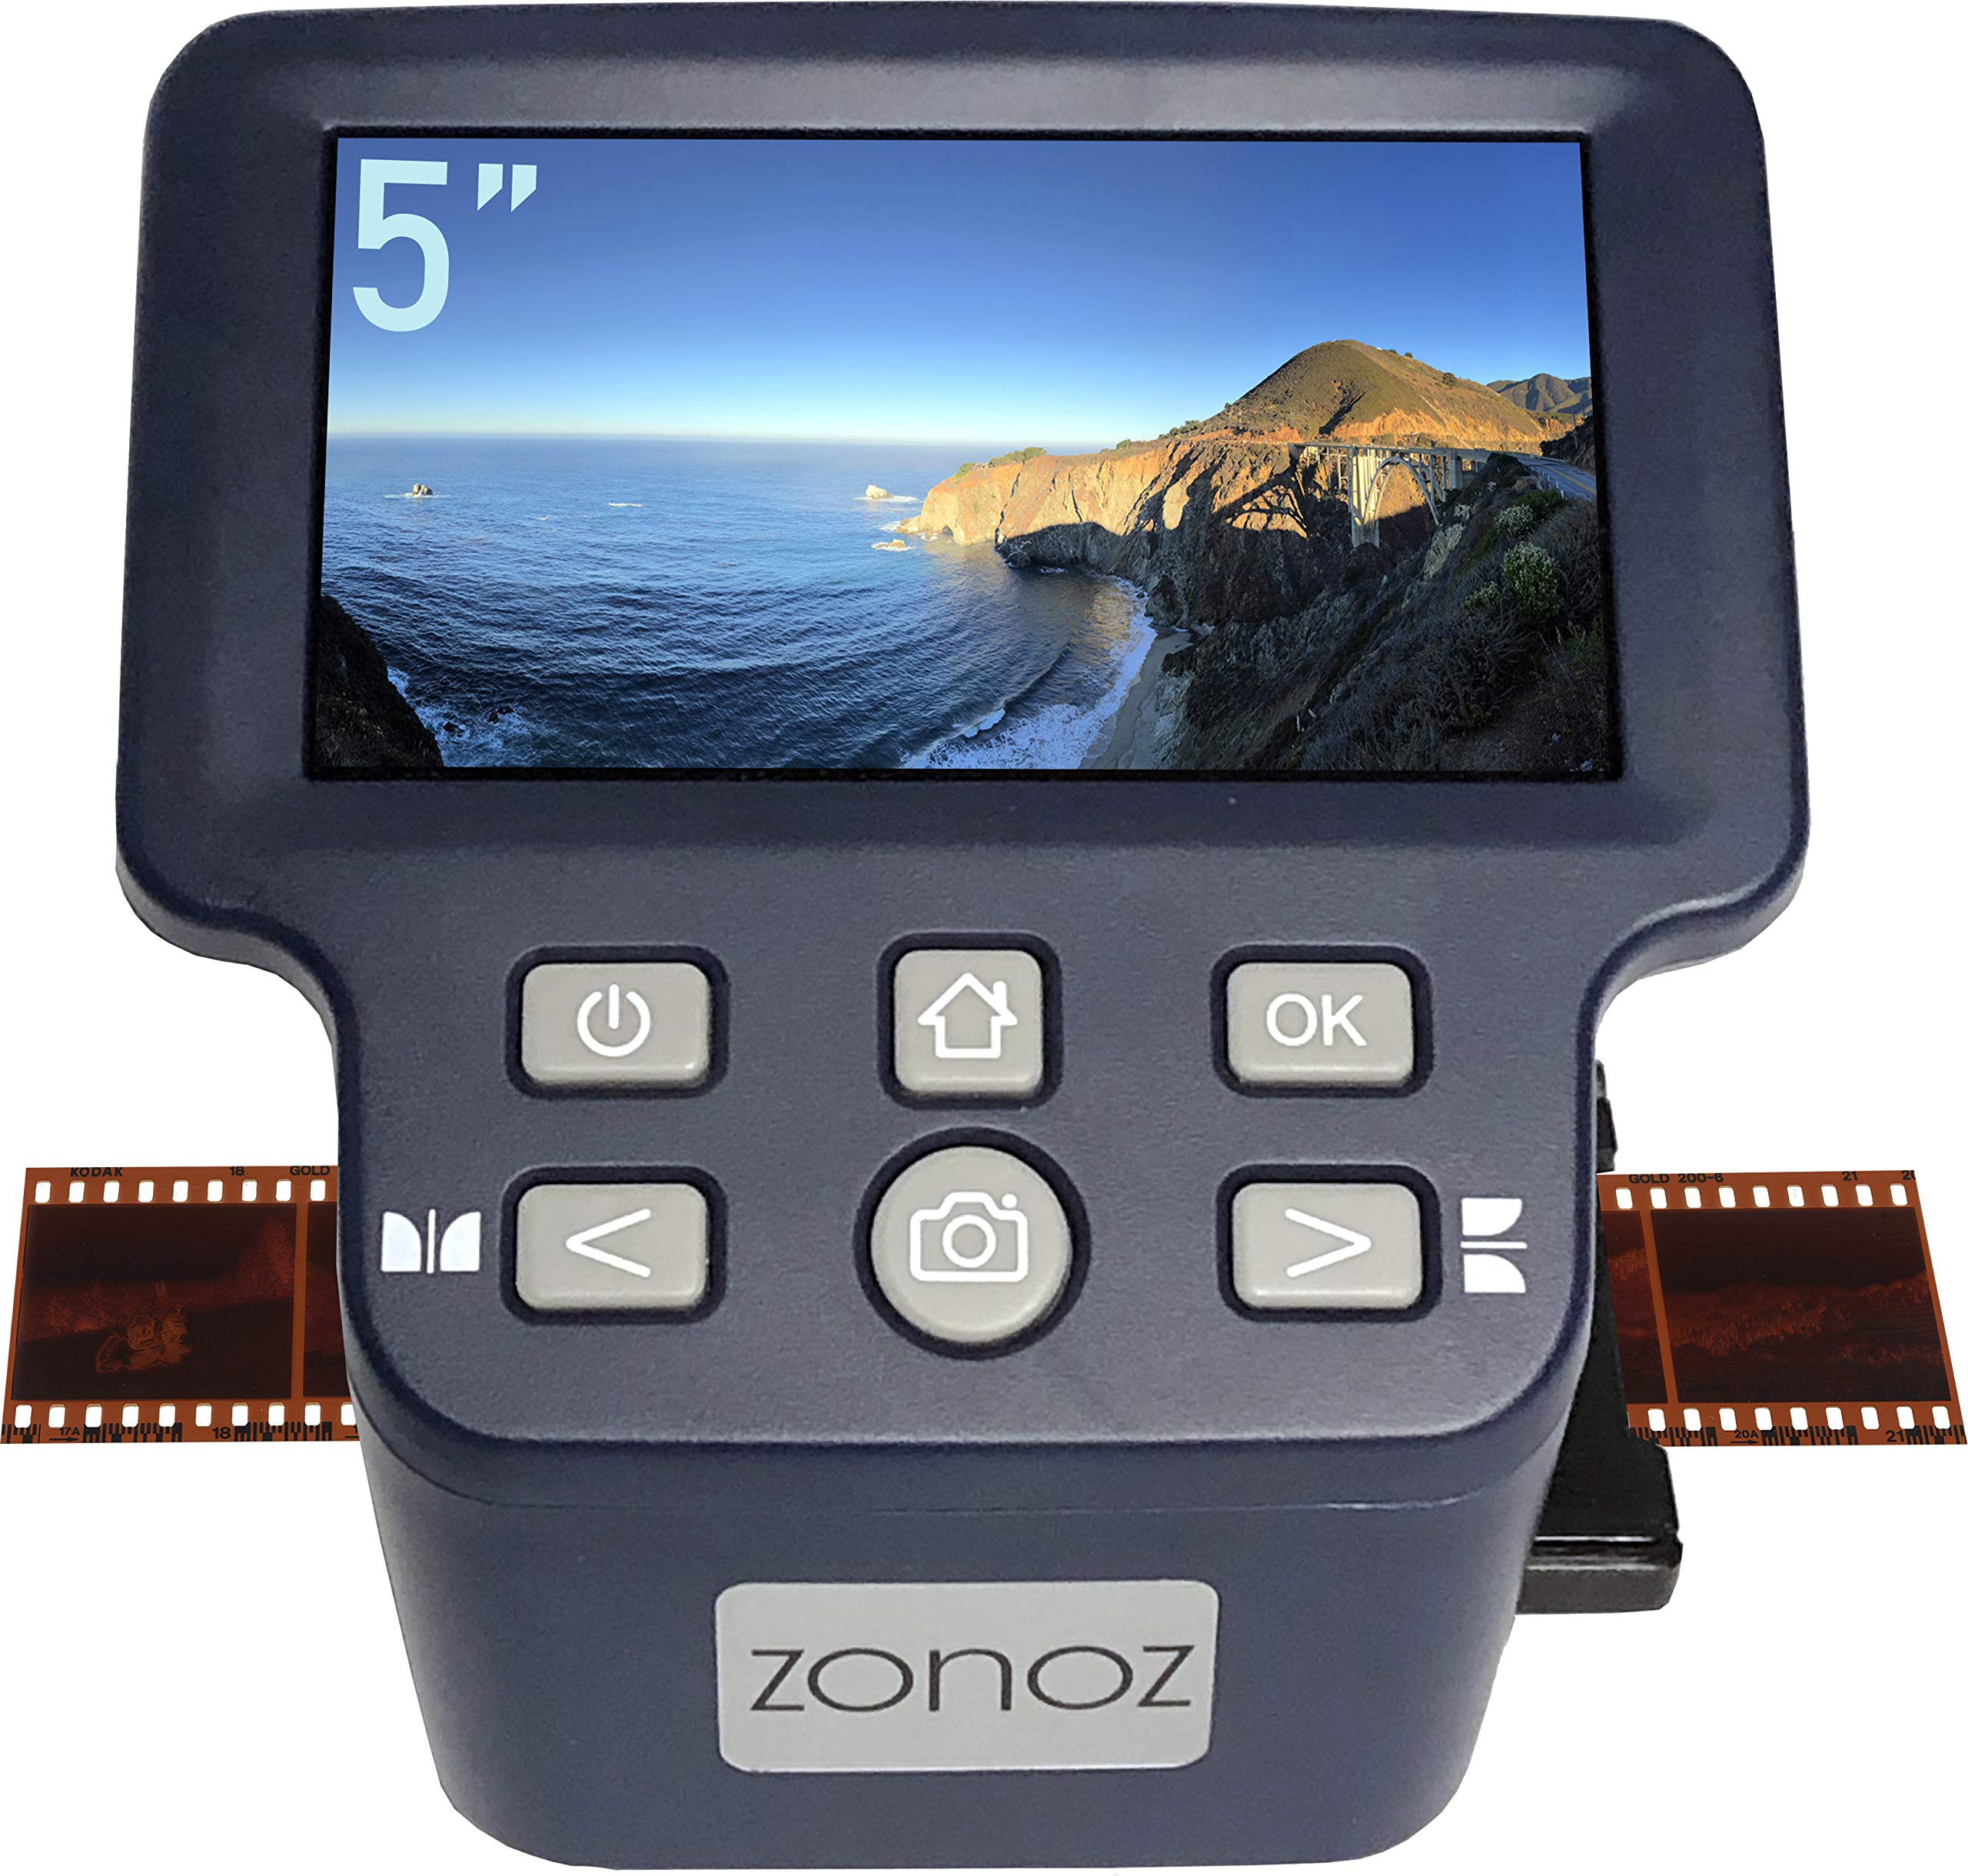 zonoz FS-Four Digital Film & Slide Scanner Converter w/HDMI Output - Converts 35mm, 126, 110, Super 8 & 8mm Film Negatives & Slides to JPEG - Large 5'' LCD, Easy-Load Adapters (Worldwide 110V-220V) by zonoz (Image #2)